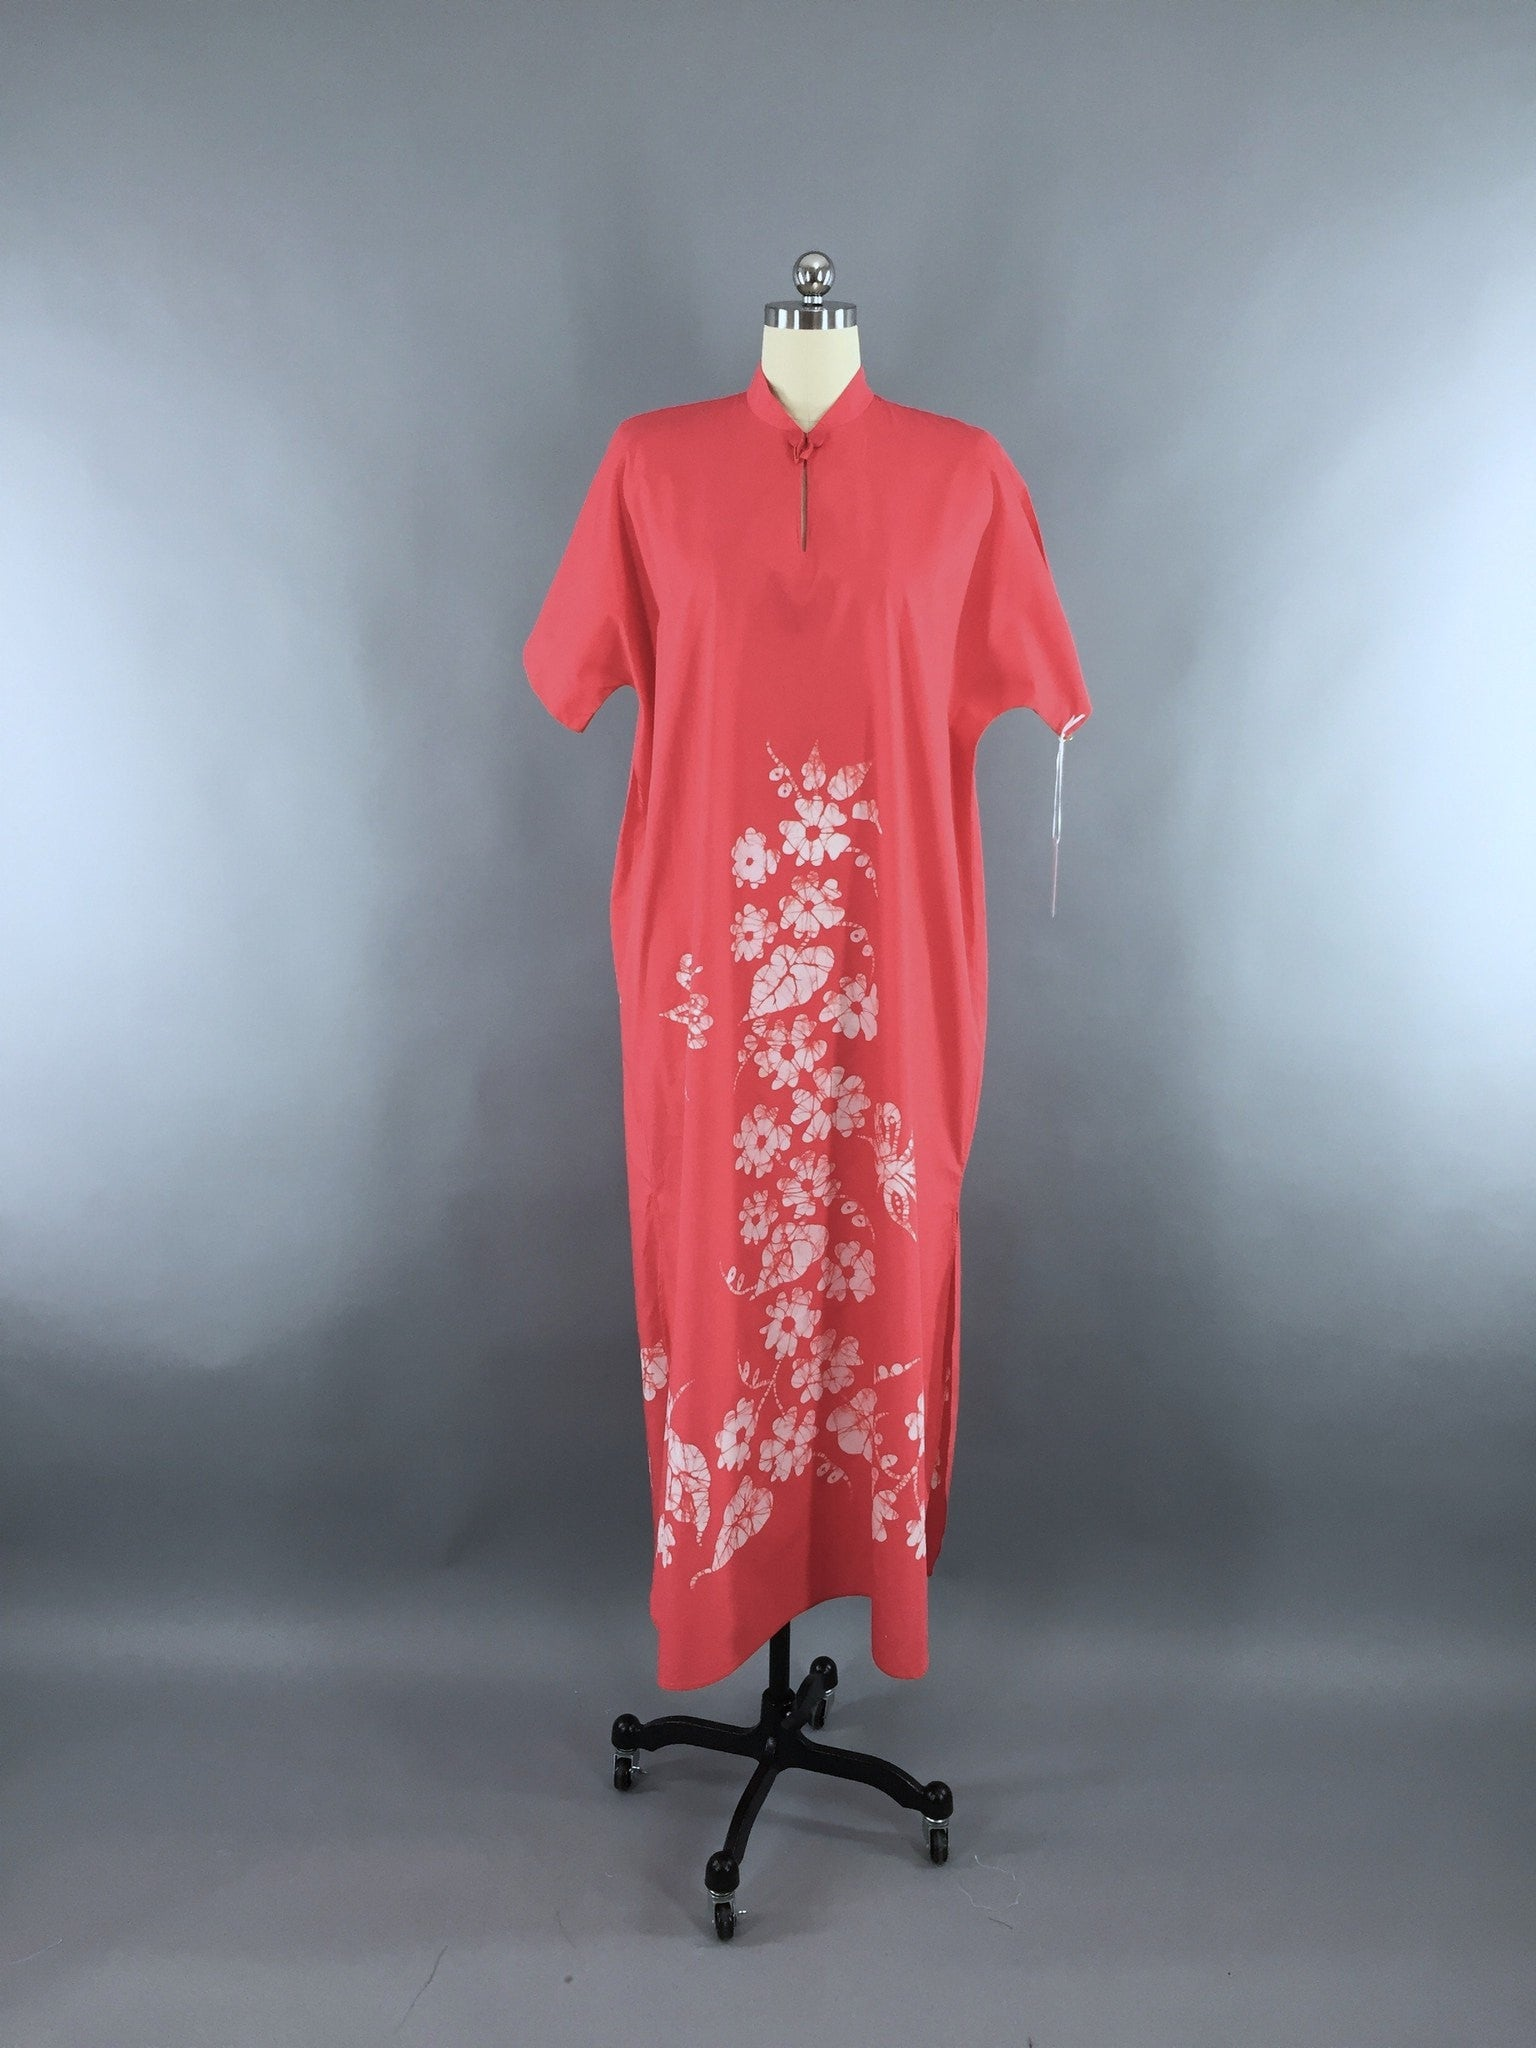 1960s Vintage Bette of Jamaica Pink Butterfly Batik Caftan Dress Dress ThisBlueBird